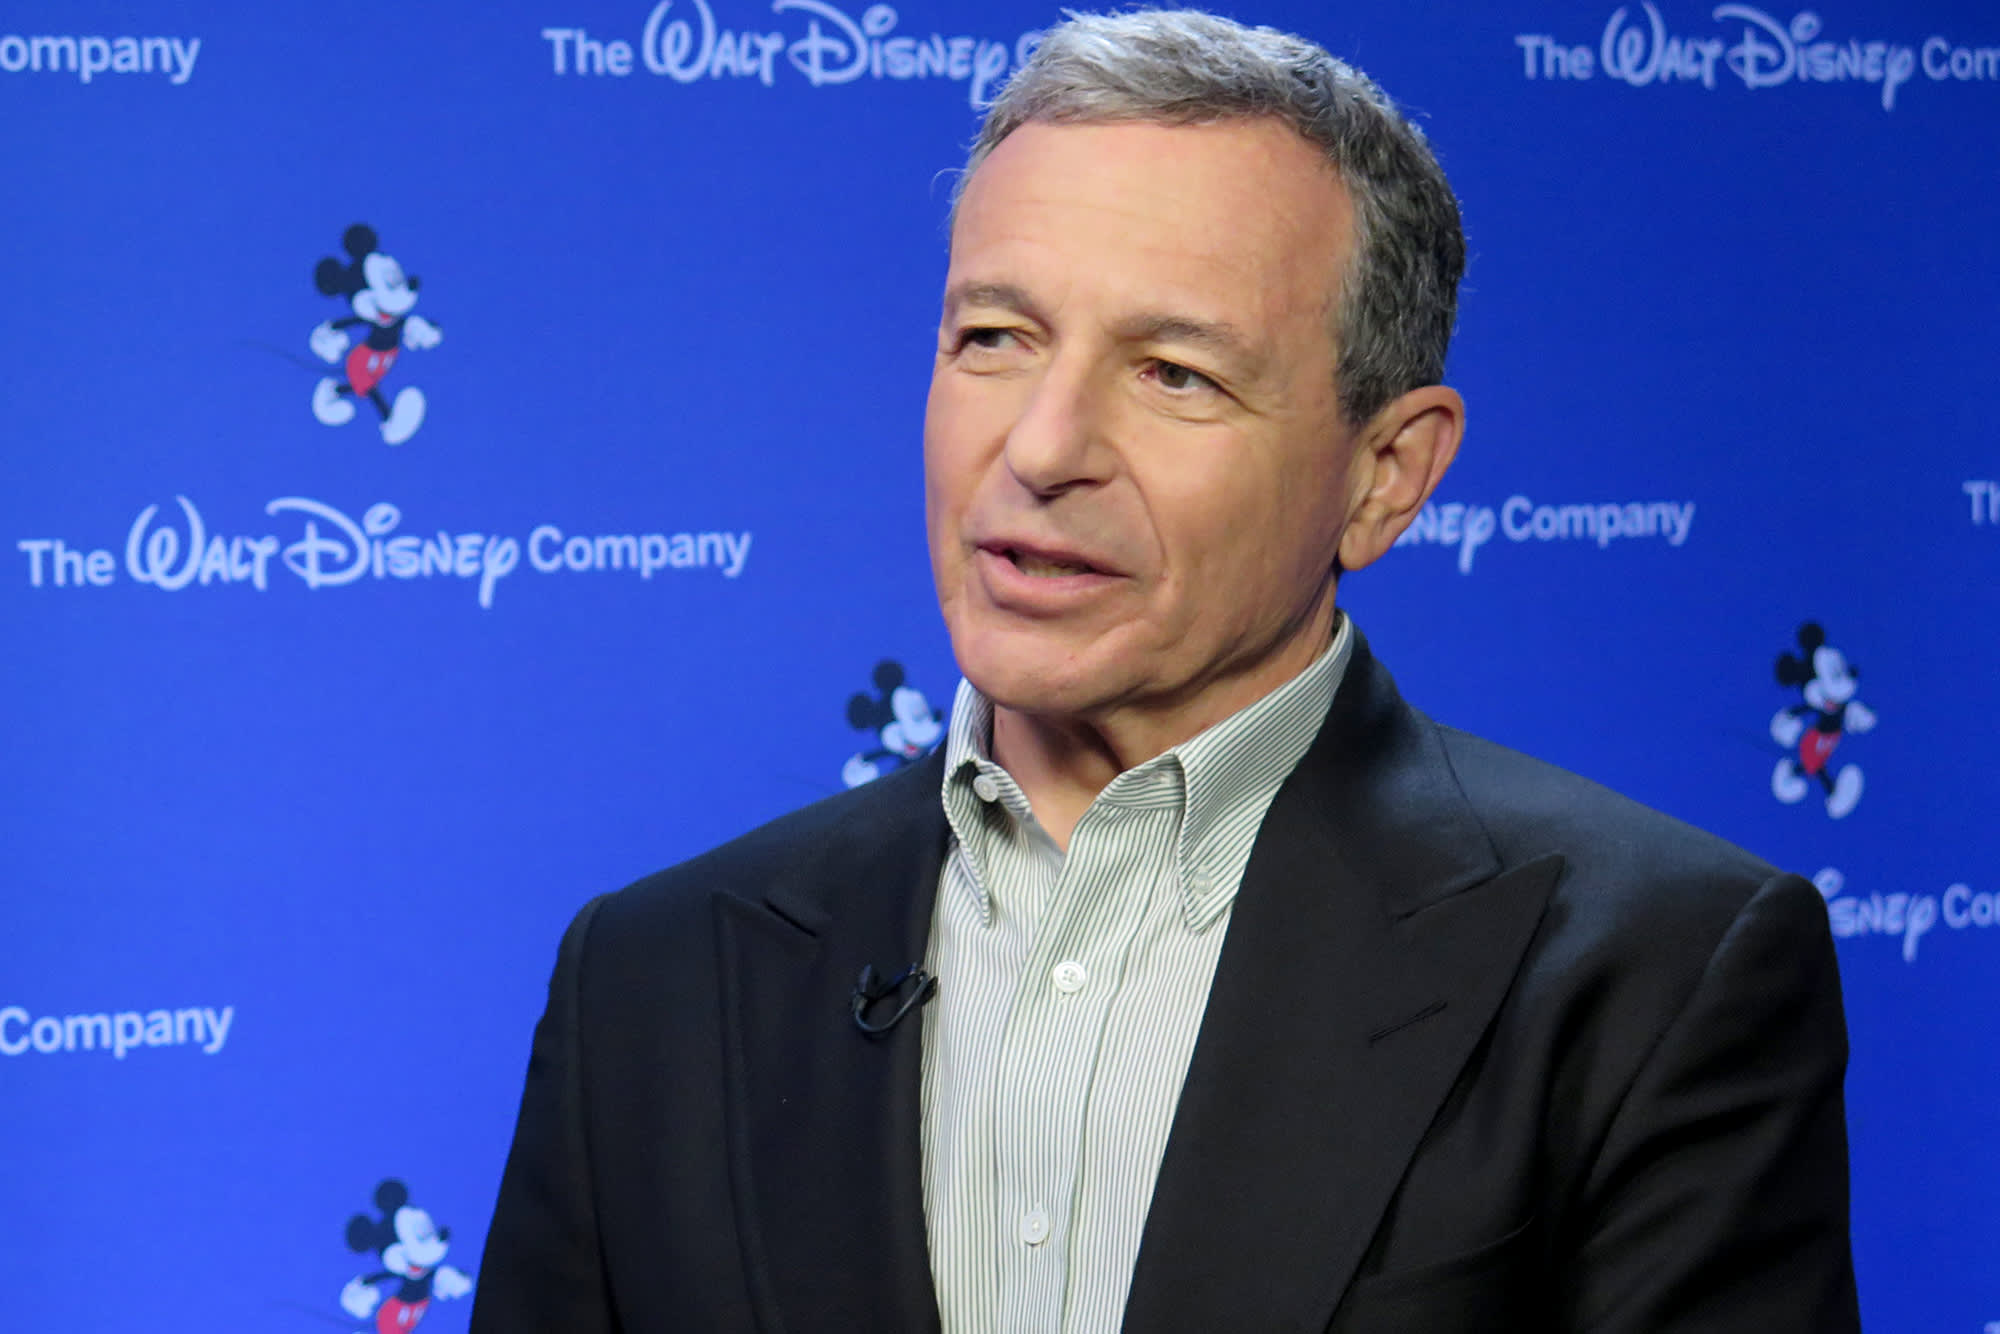 Bob Iger explains why he's sticking around at Disney after leaving CEO role